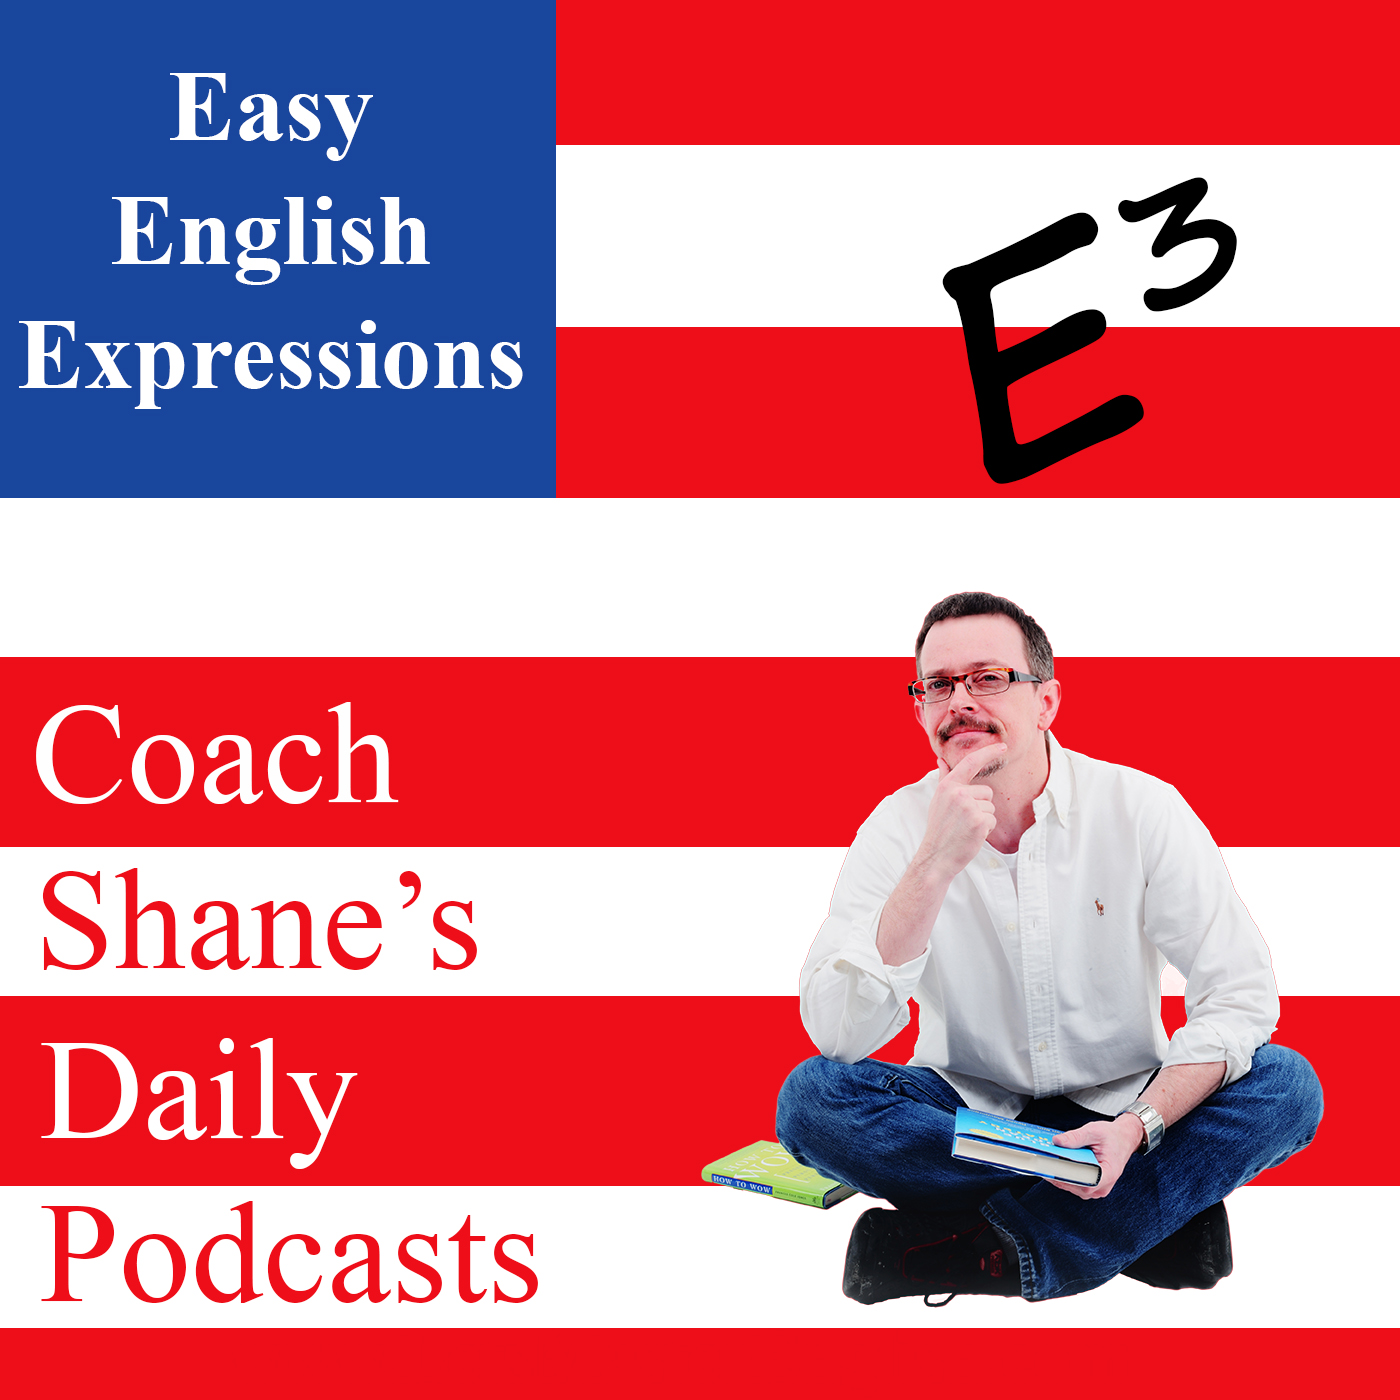 80 Daily Easy English Expression PODCAST—to get CARRIED AWAY